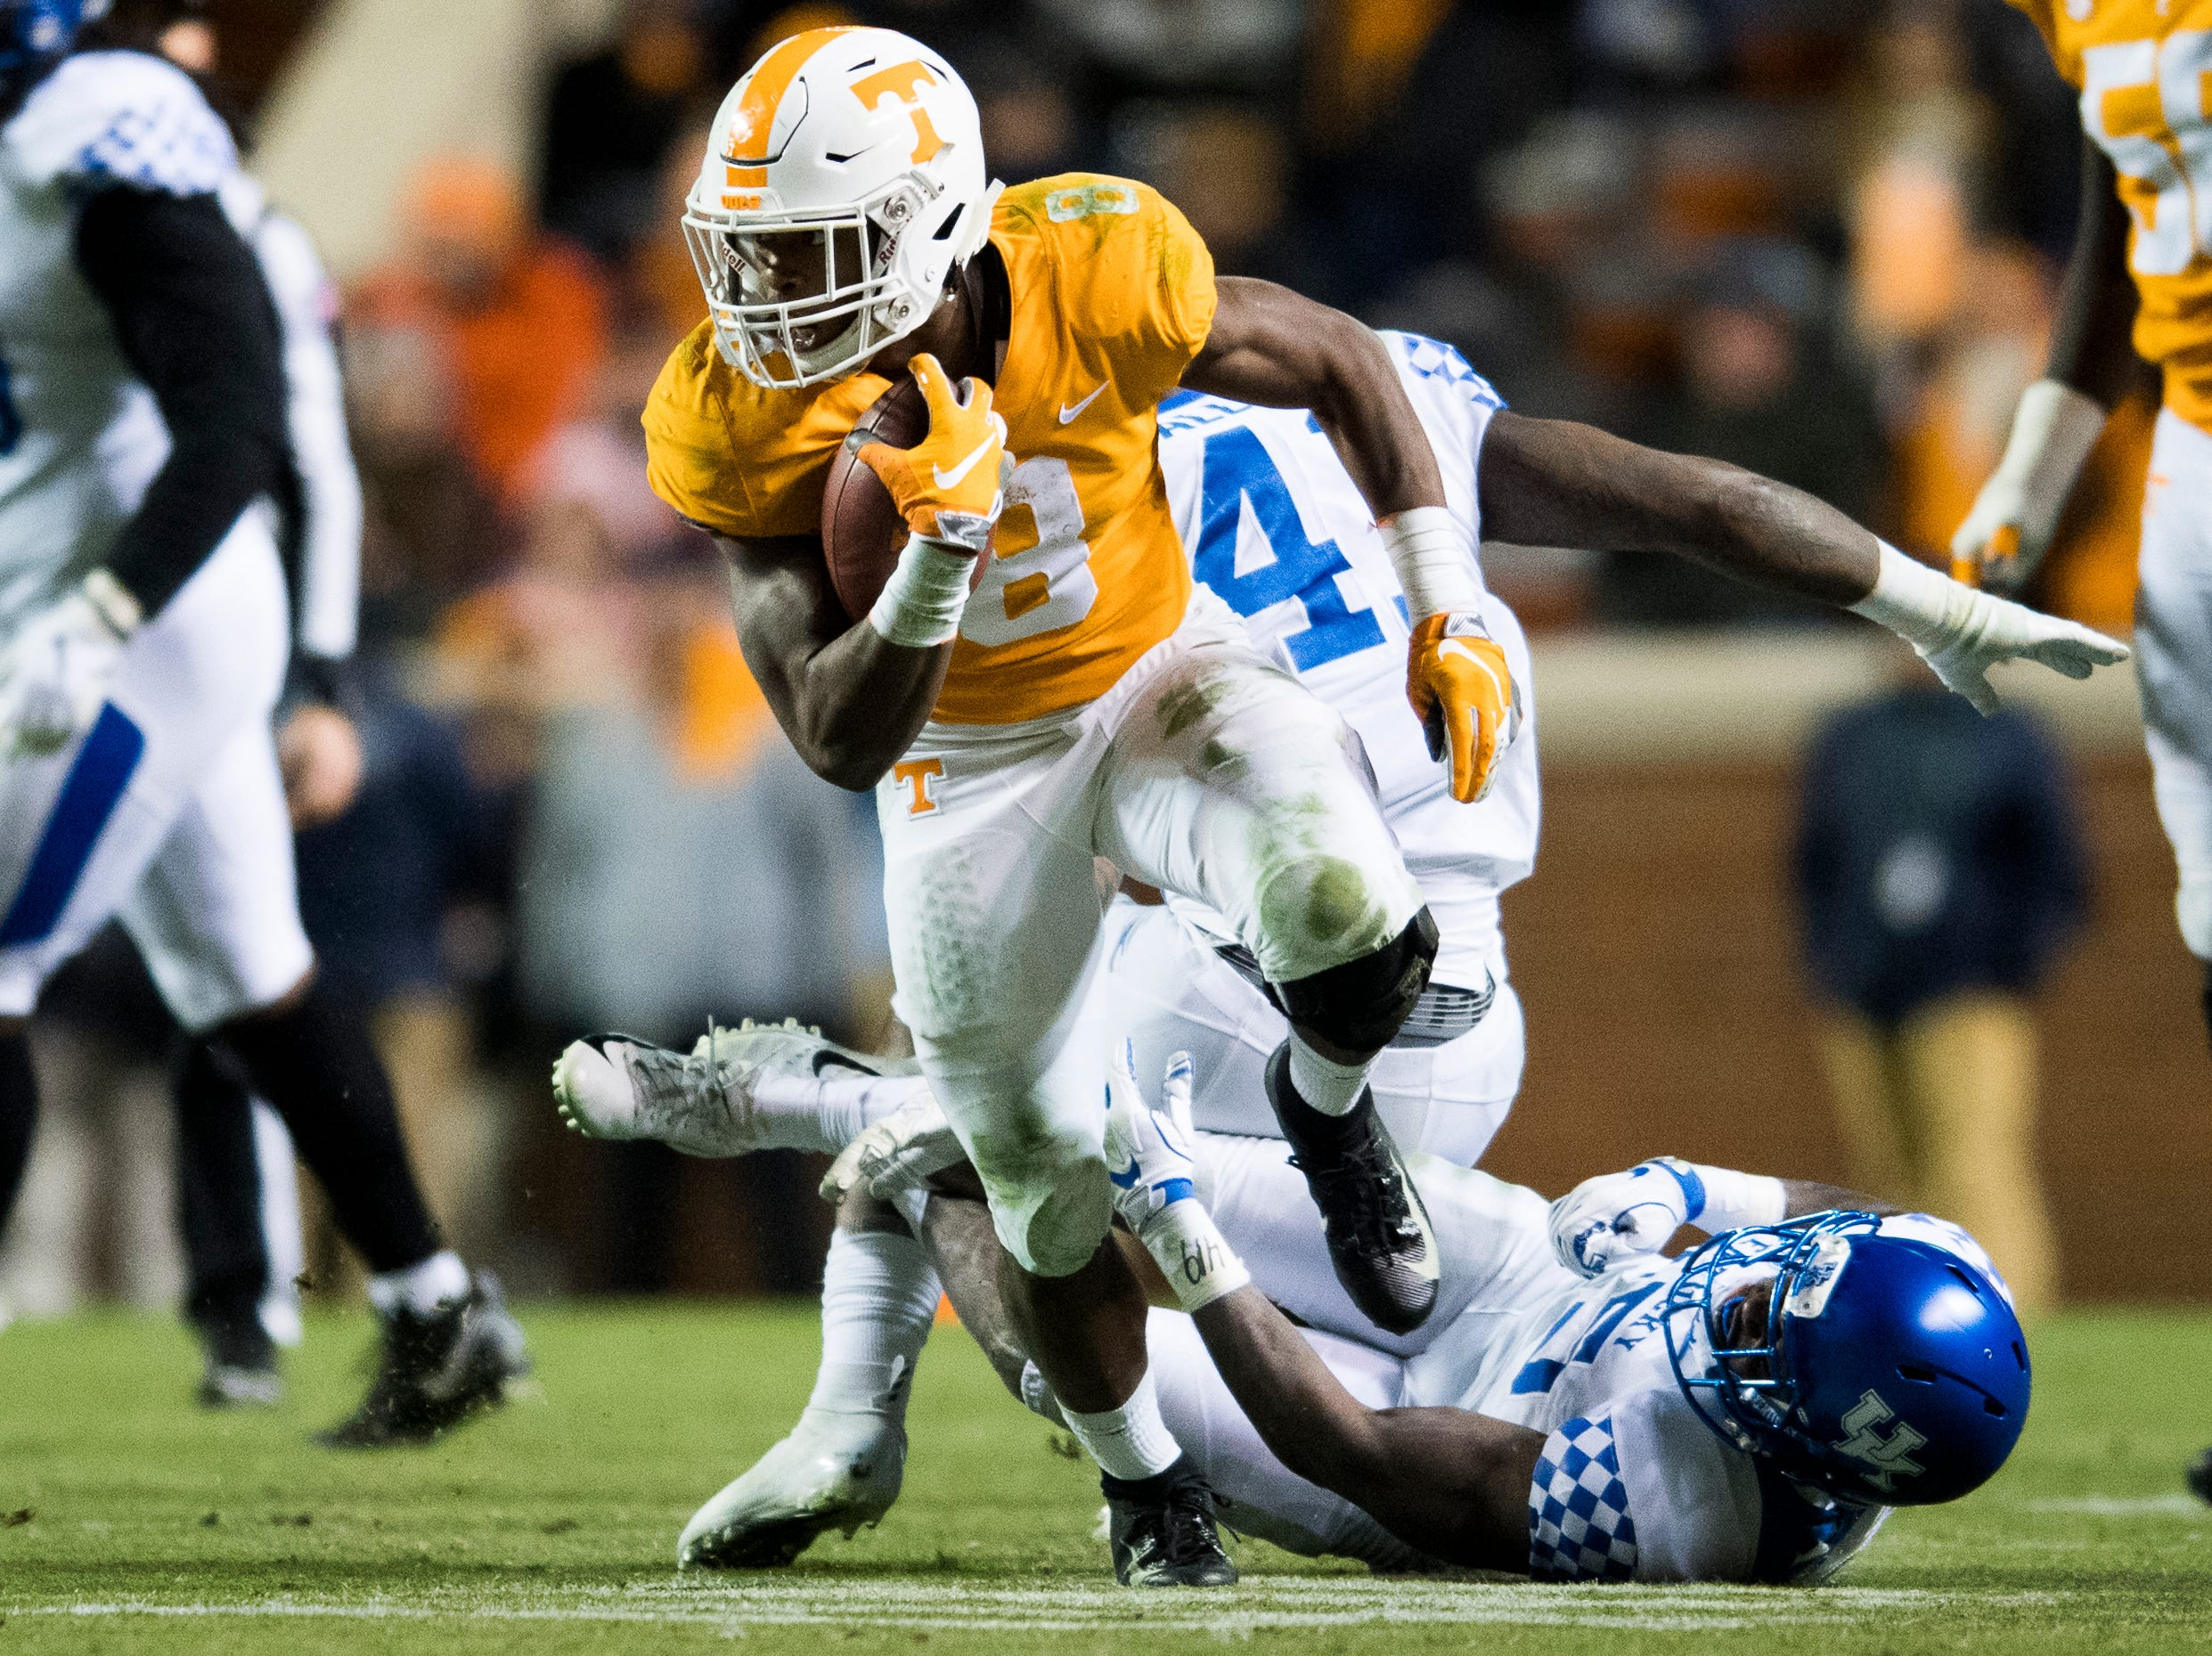 Tennessee running back Ty Chandler (8) runs past the Kentucky defense during a game between Tennessee and Kentucky at Neyland Stadium in Knoxville, Tennessee on Saturday, November 10, 2018.